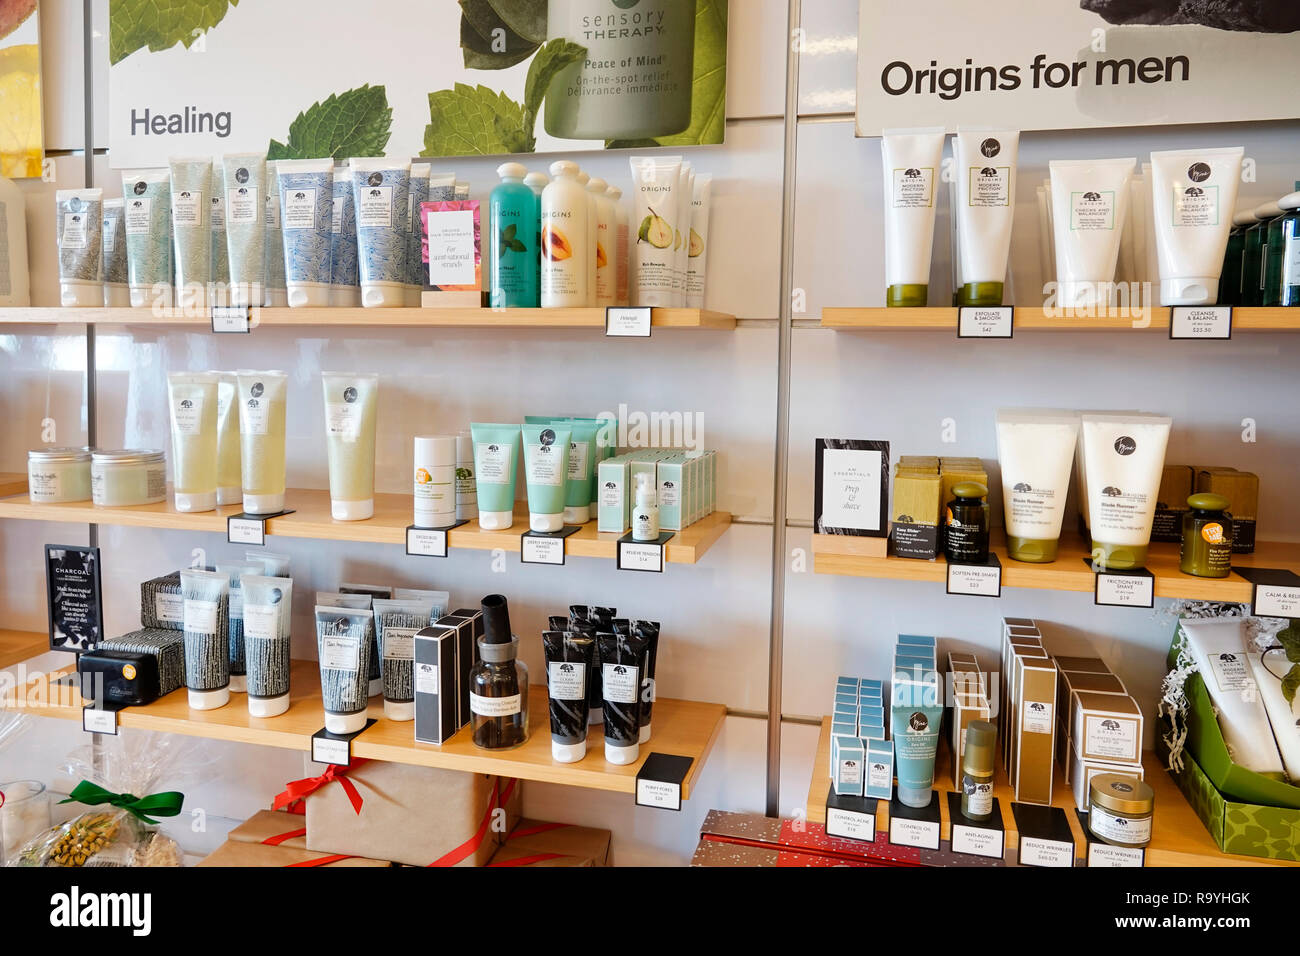 Fort Ft. Lauderdale Florida Pembroke Pines Shops At Pembroke Gardens mall shopping Origins cosmetics beauty products skincare inside display sale - Stock Image